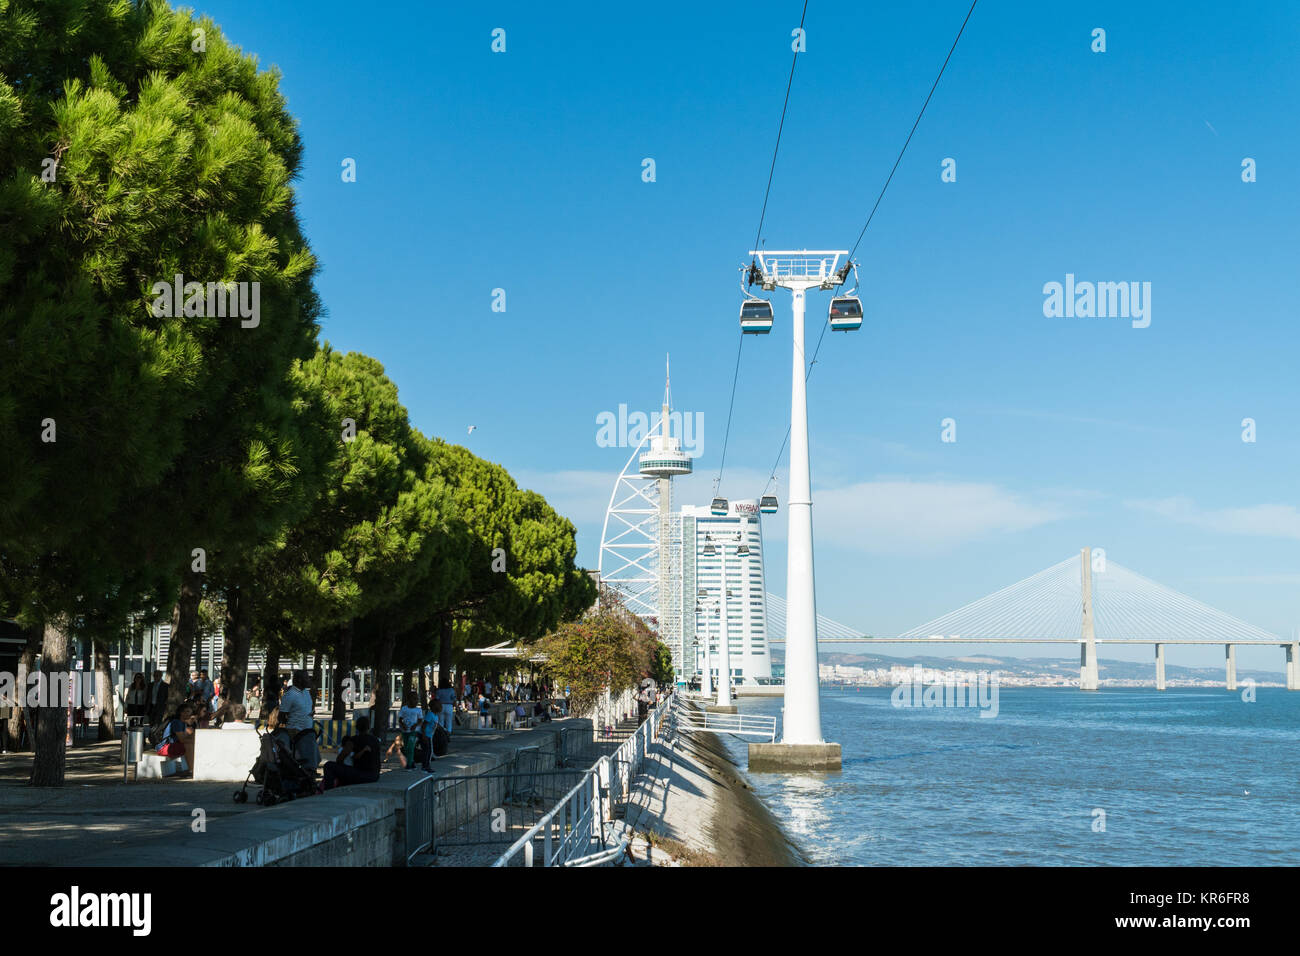 Lisbon, Portugal - 30 October 2017: Telecabines (cable cars) over Passeio das Tagides park and people walking by - Stock Image